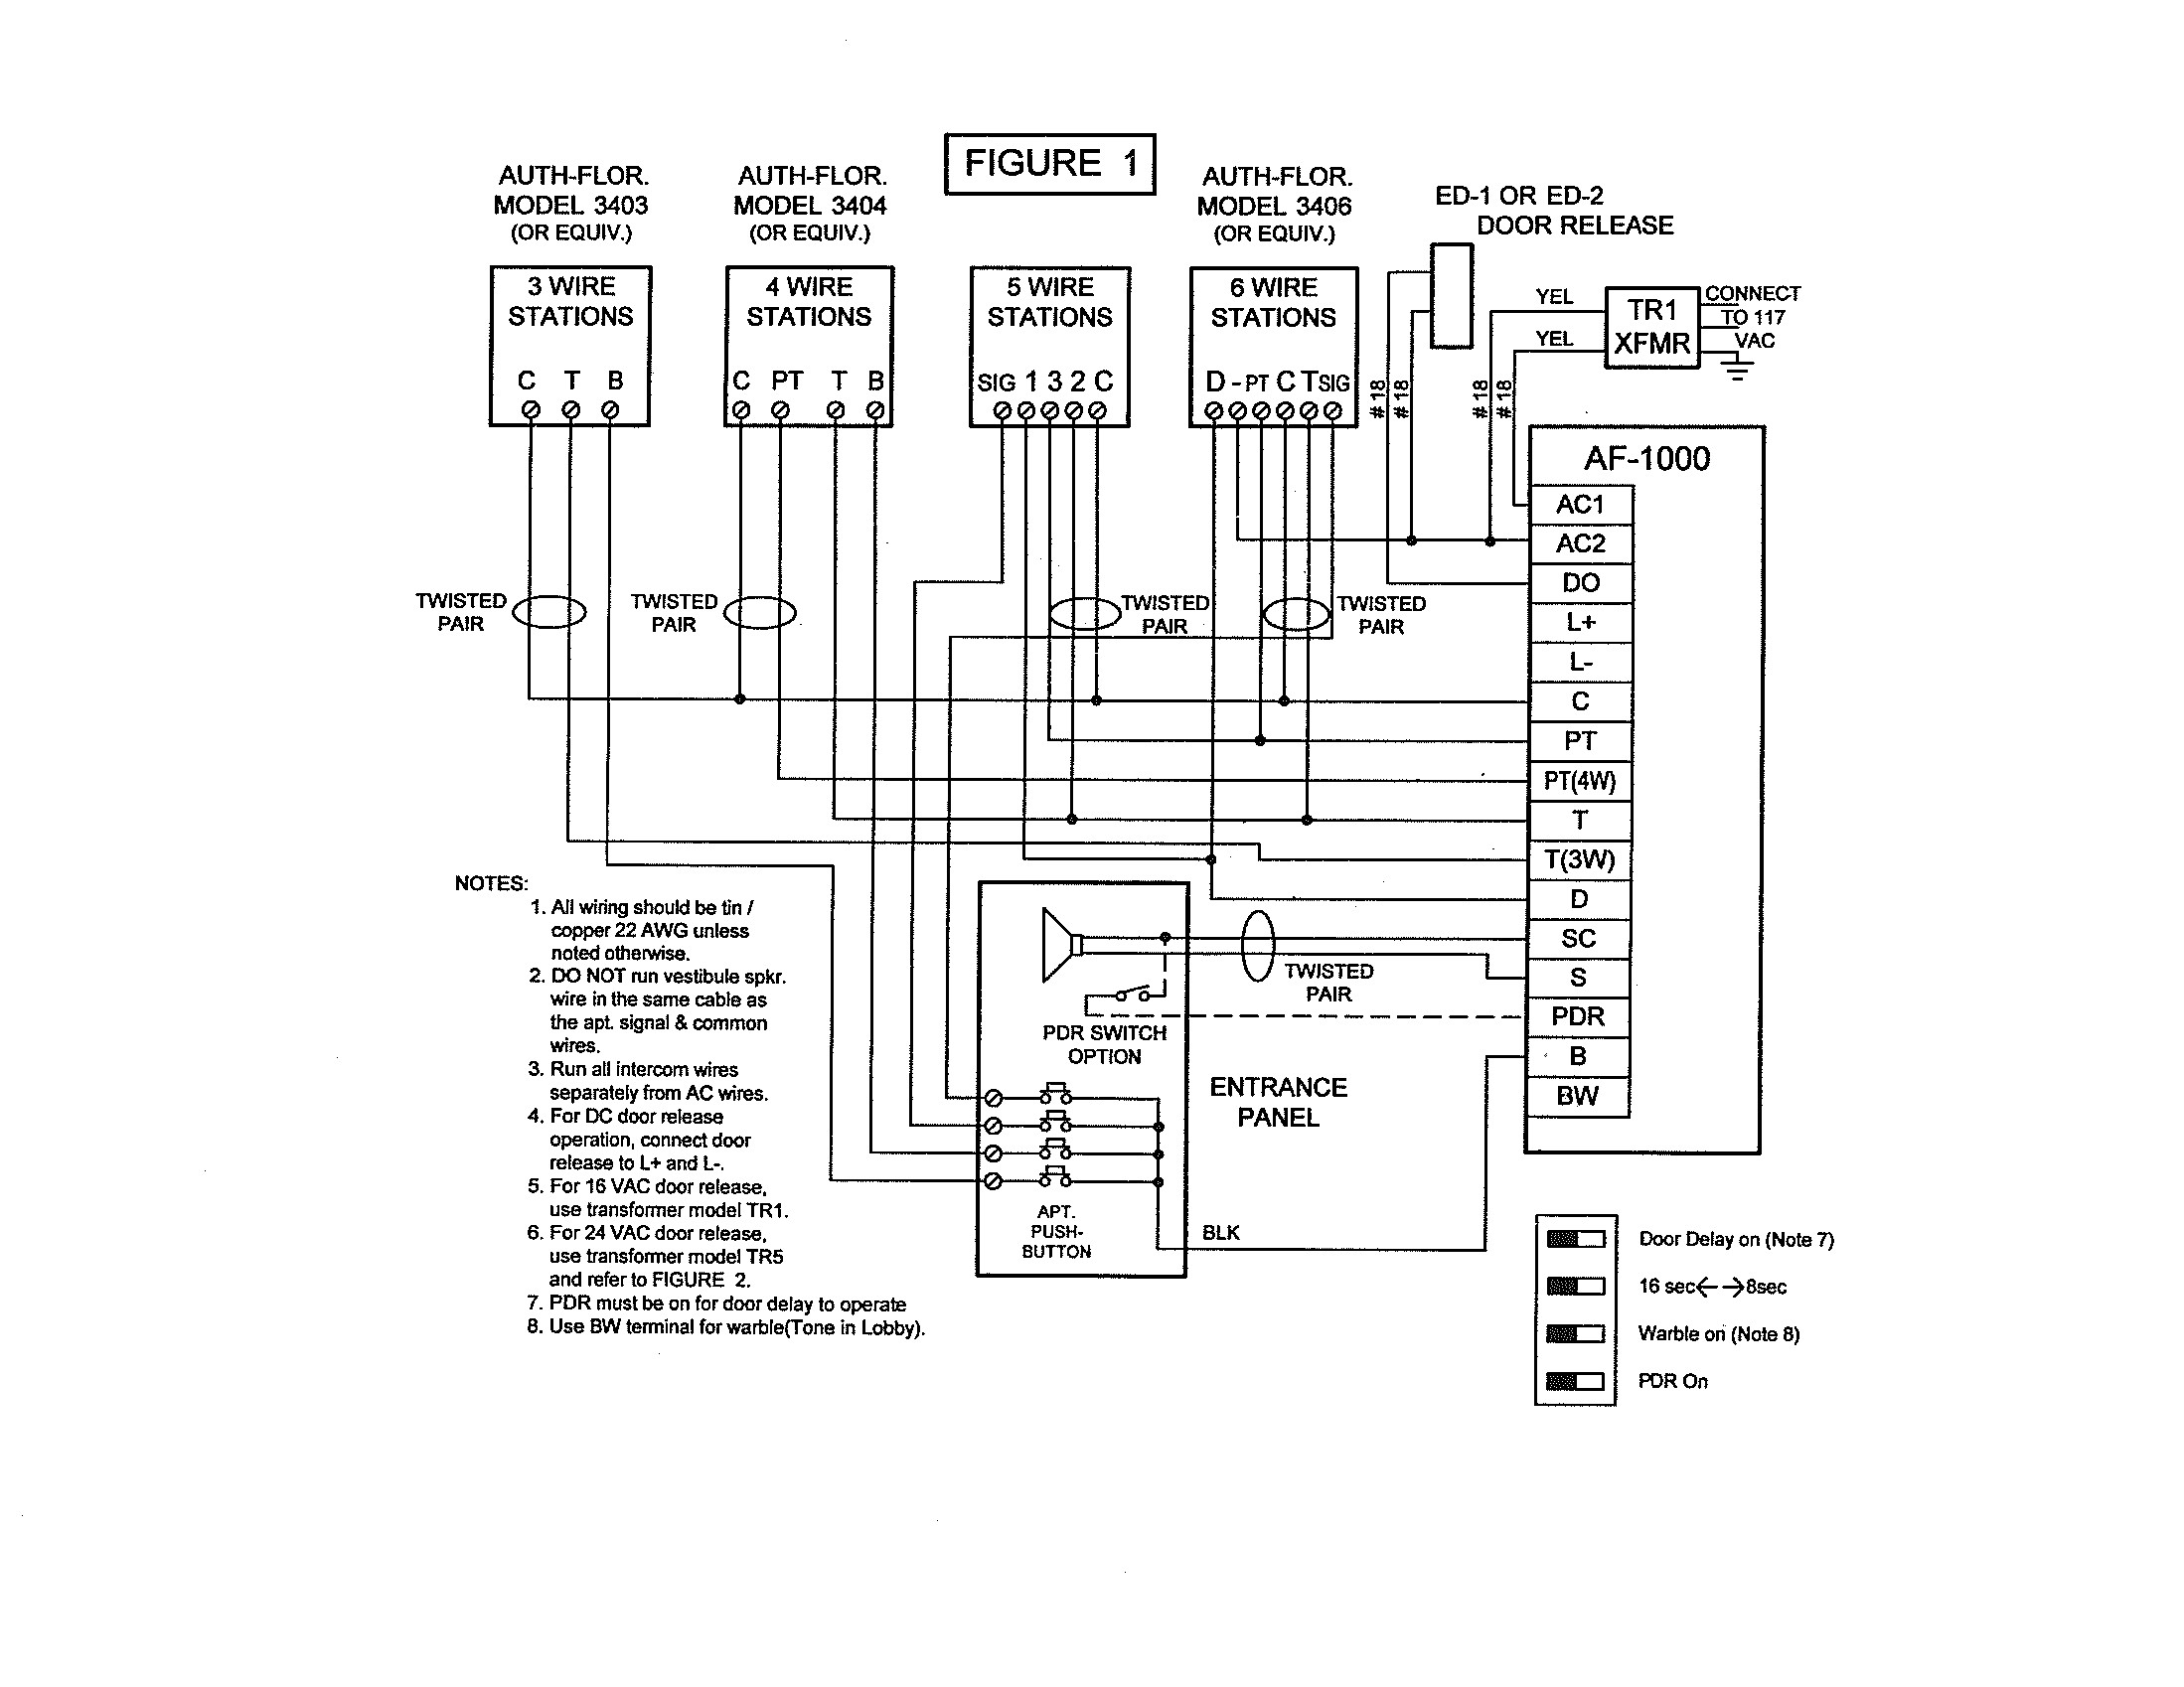 Chevrolet Impala Mk9 Ninth Generation 2006 2014 Fuse Box Diagram further 43g71n in addition SUBARU Car Radio Wiring Connector together with Twin reverb sf as well Schems. on dual amplifier wiring diagram